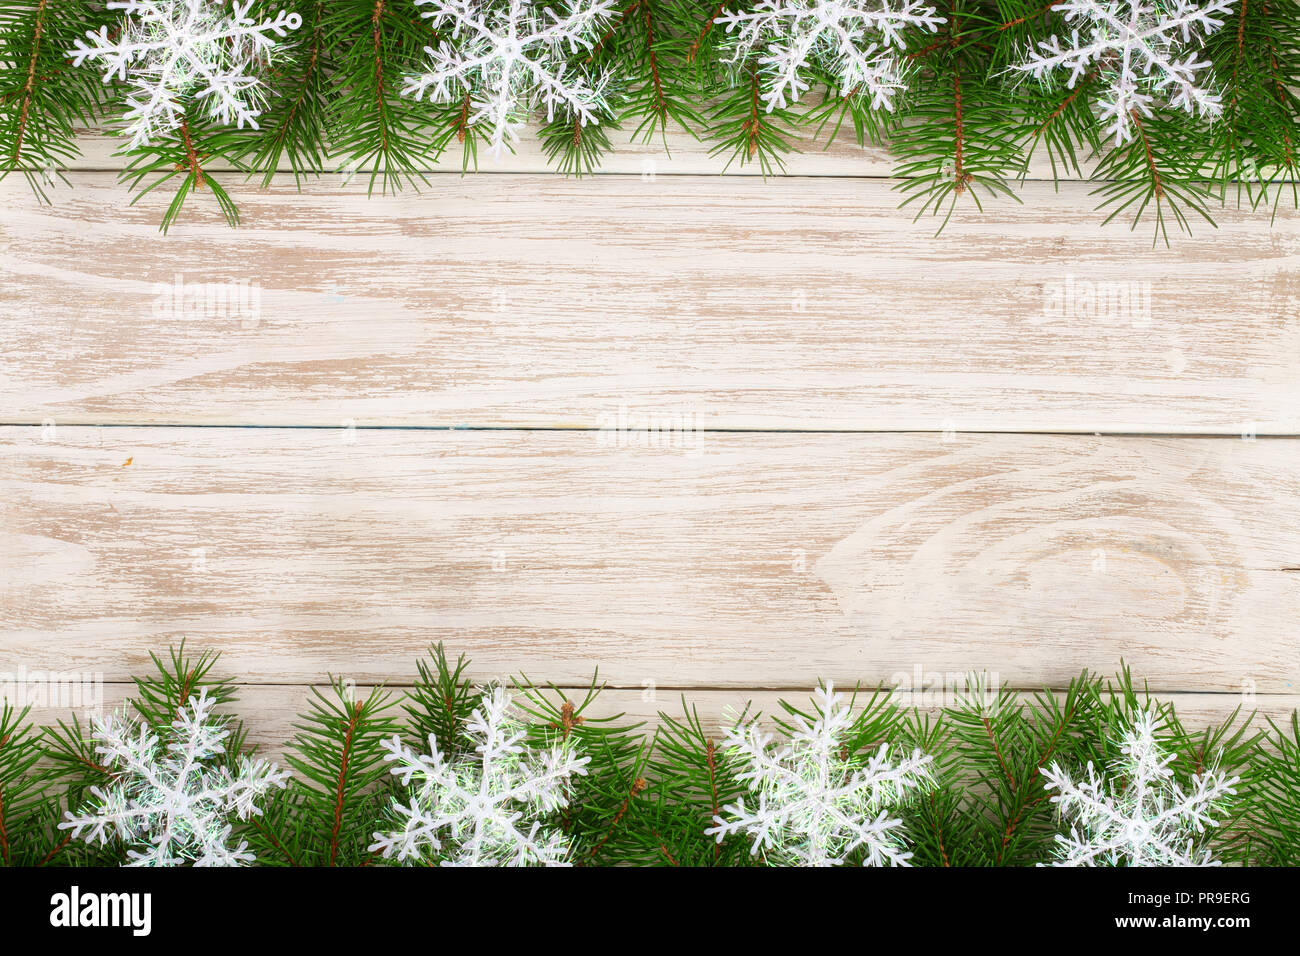 Christmas frame made of fir branches decorated with snowflakes on a light wooden background - Stock Image